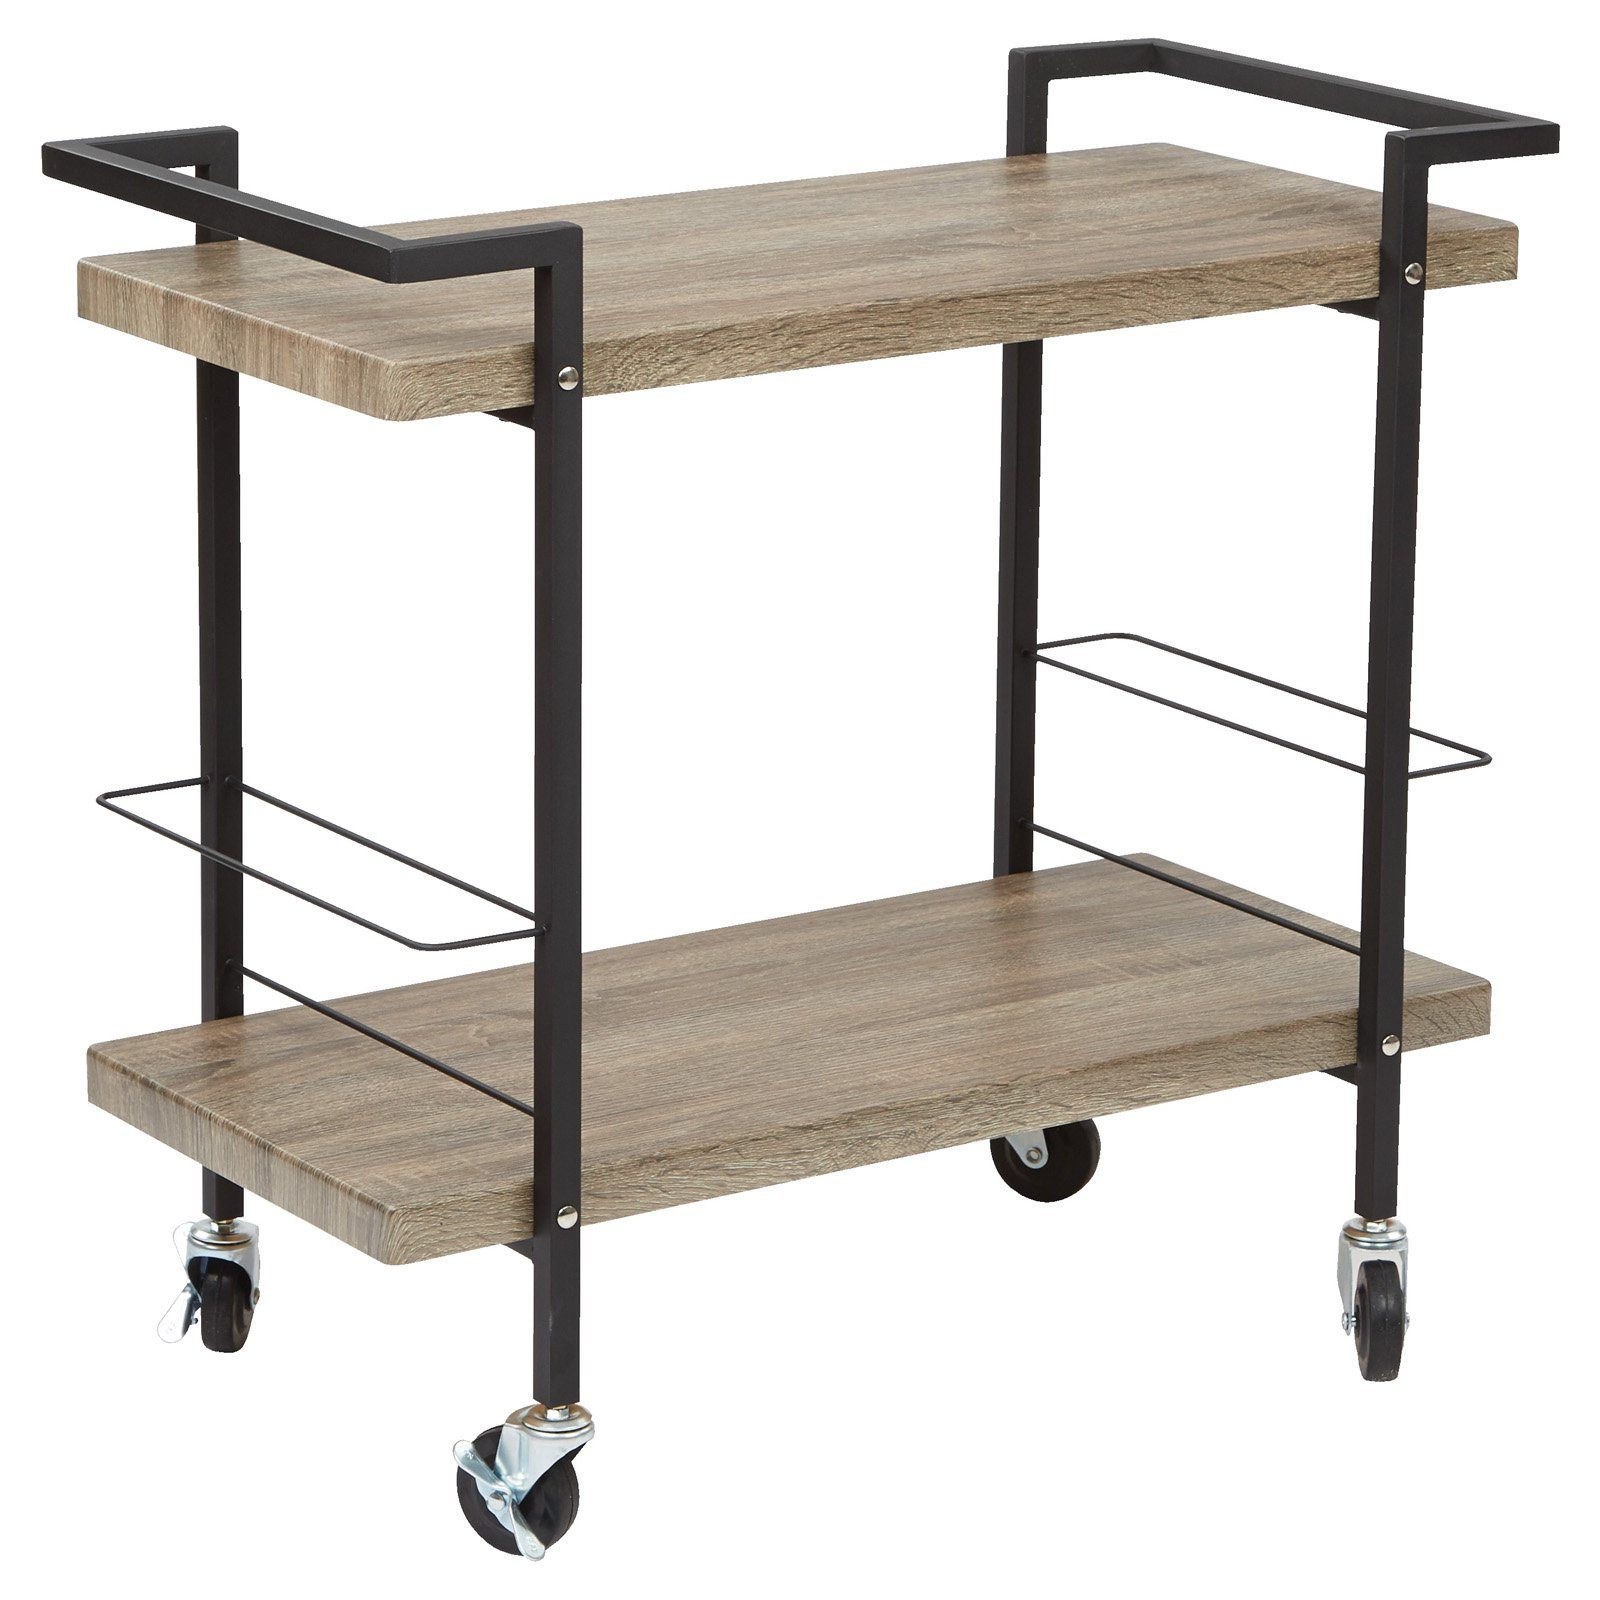 Maxwell Serving Cart, Ash Veneer Finish, Black Powder Coated Steel Frame